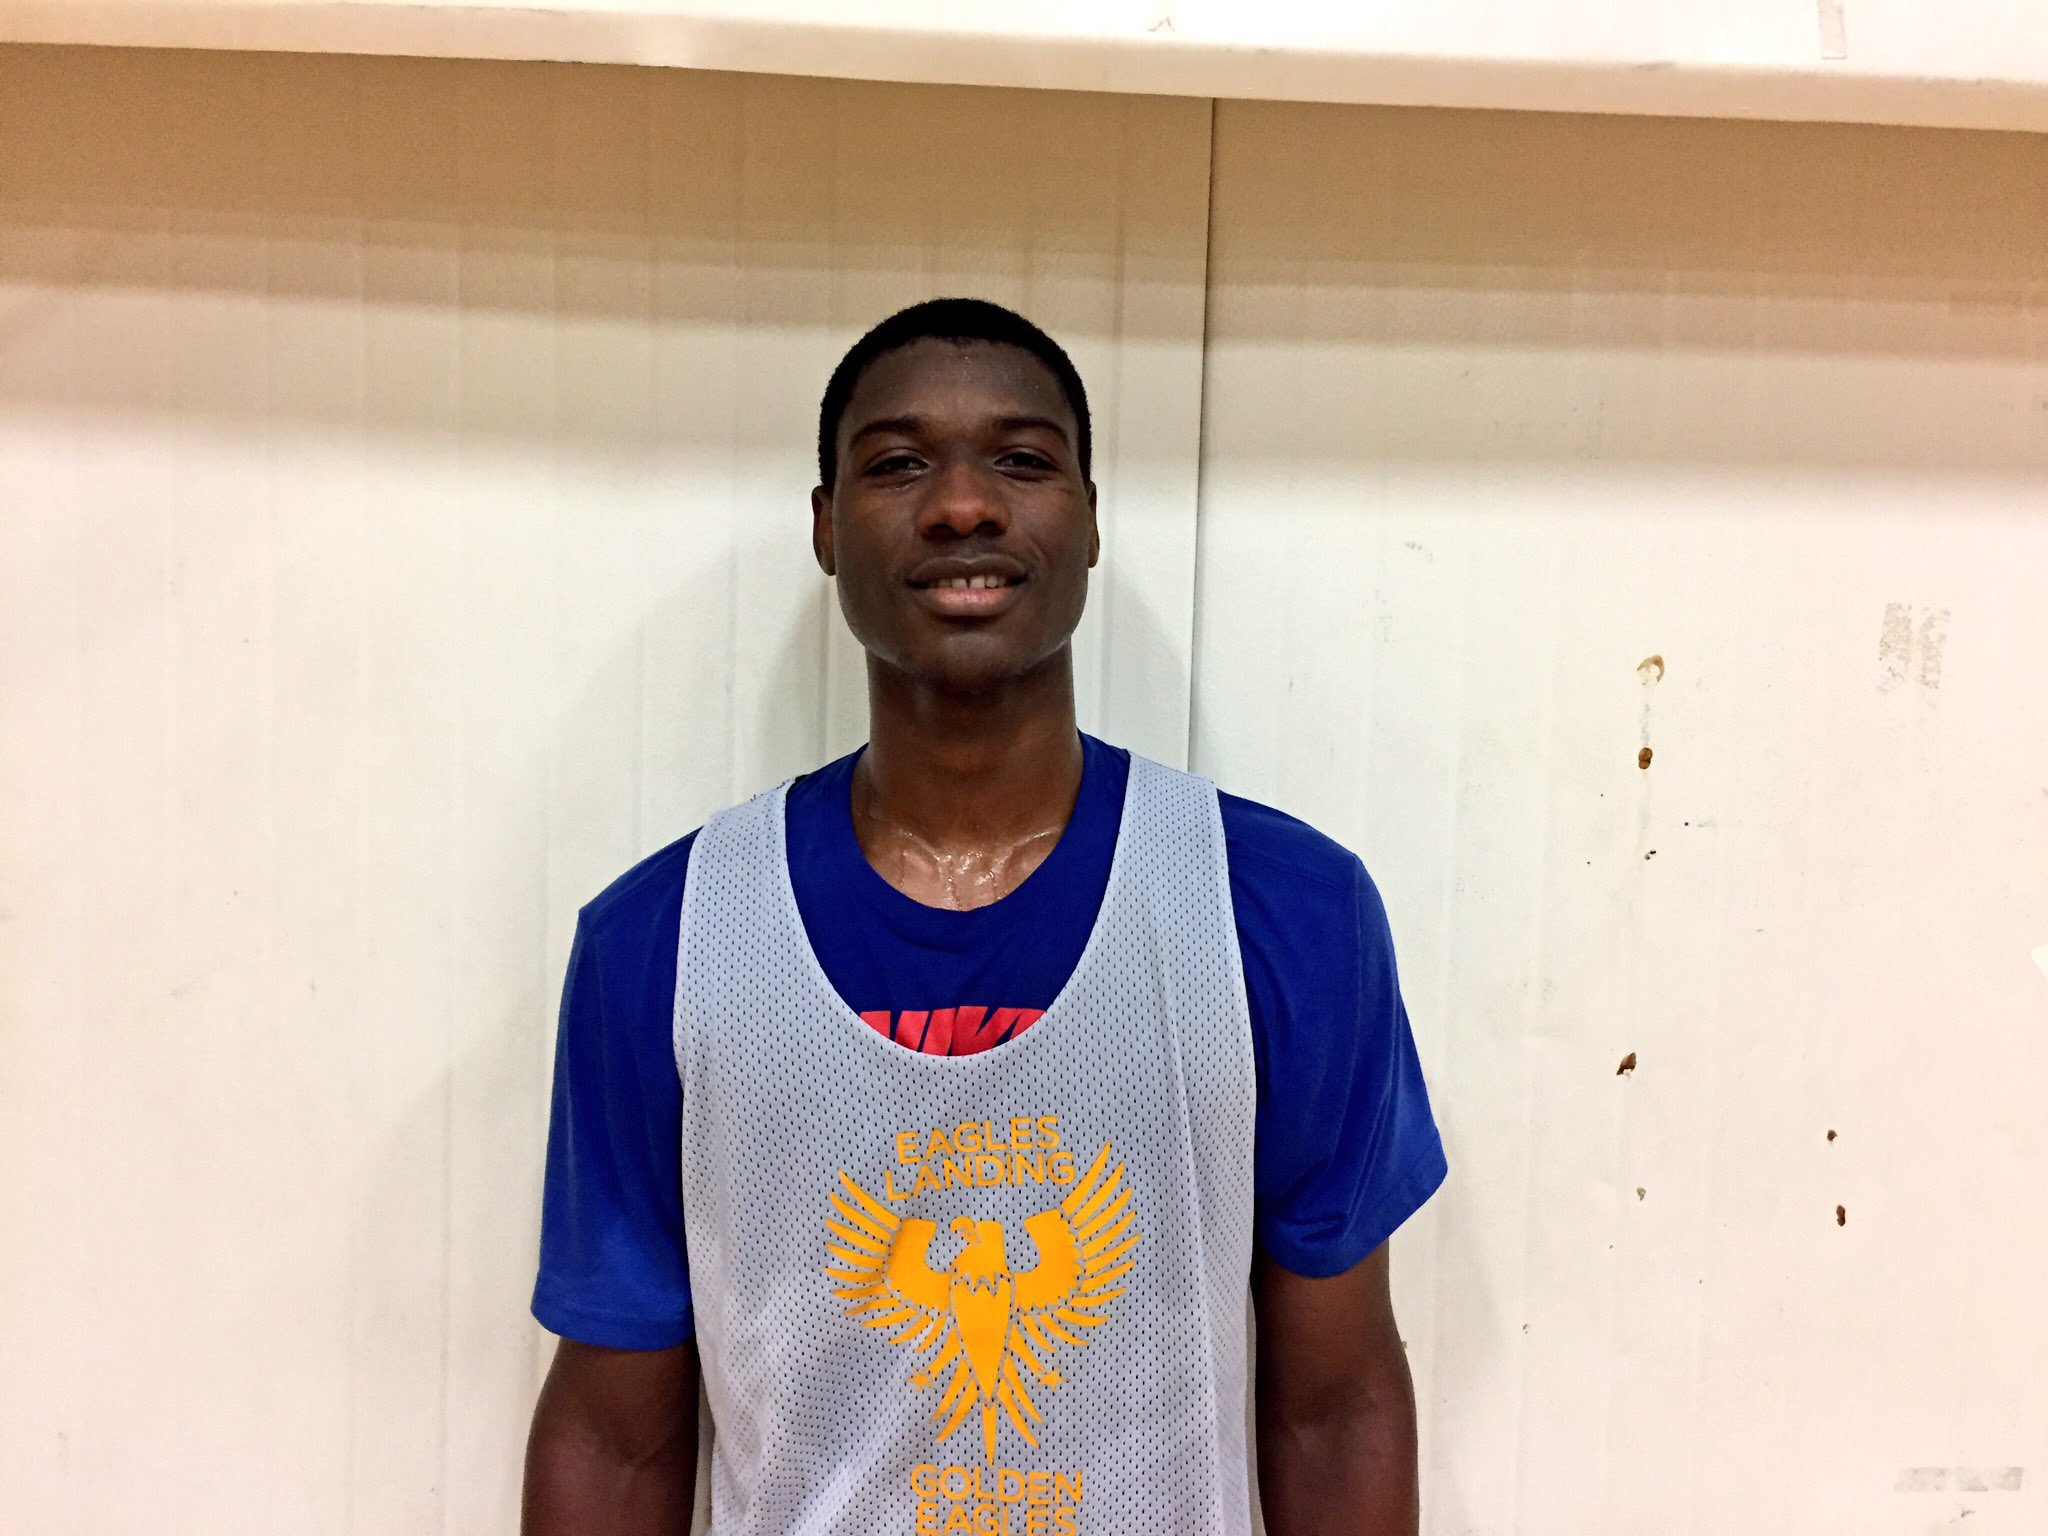 Mohammed Abubukar is a name to get familiar with in the GHSA